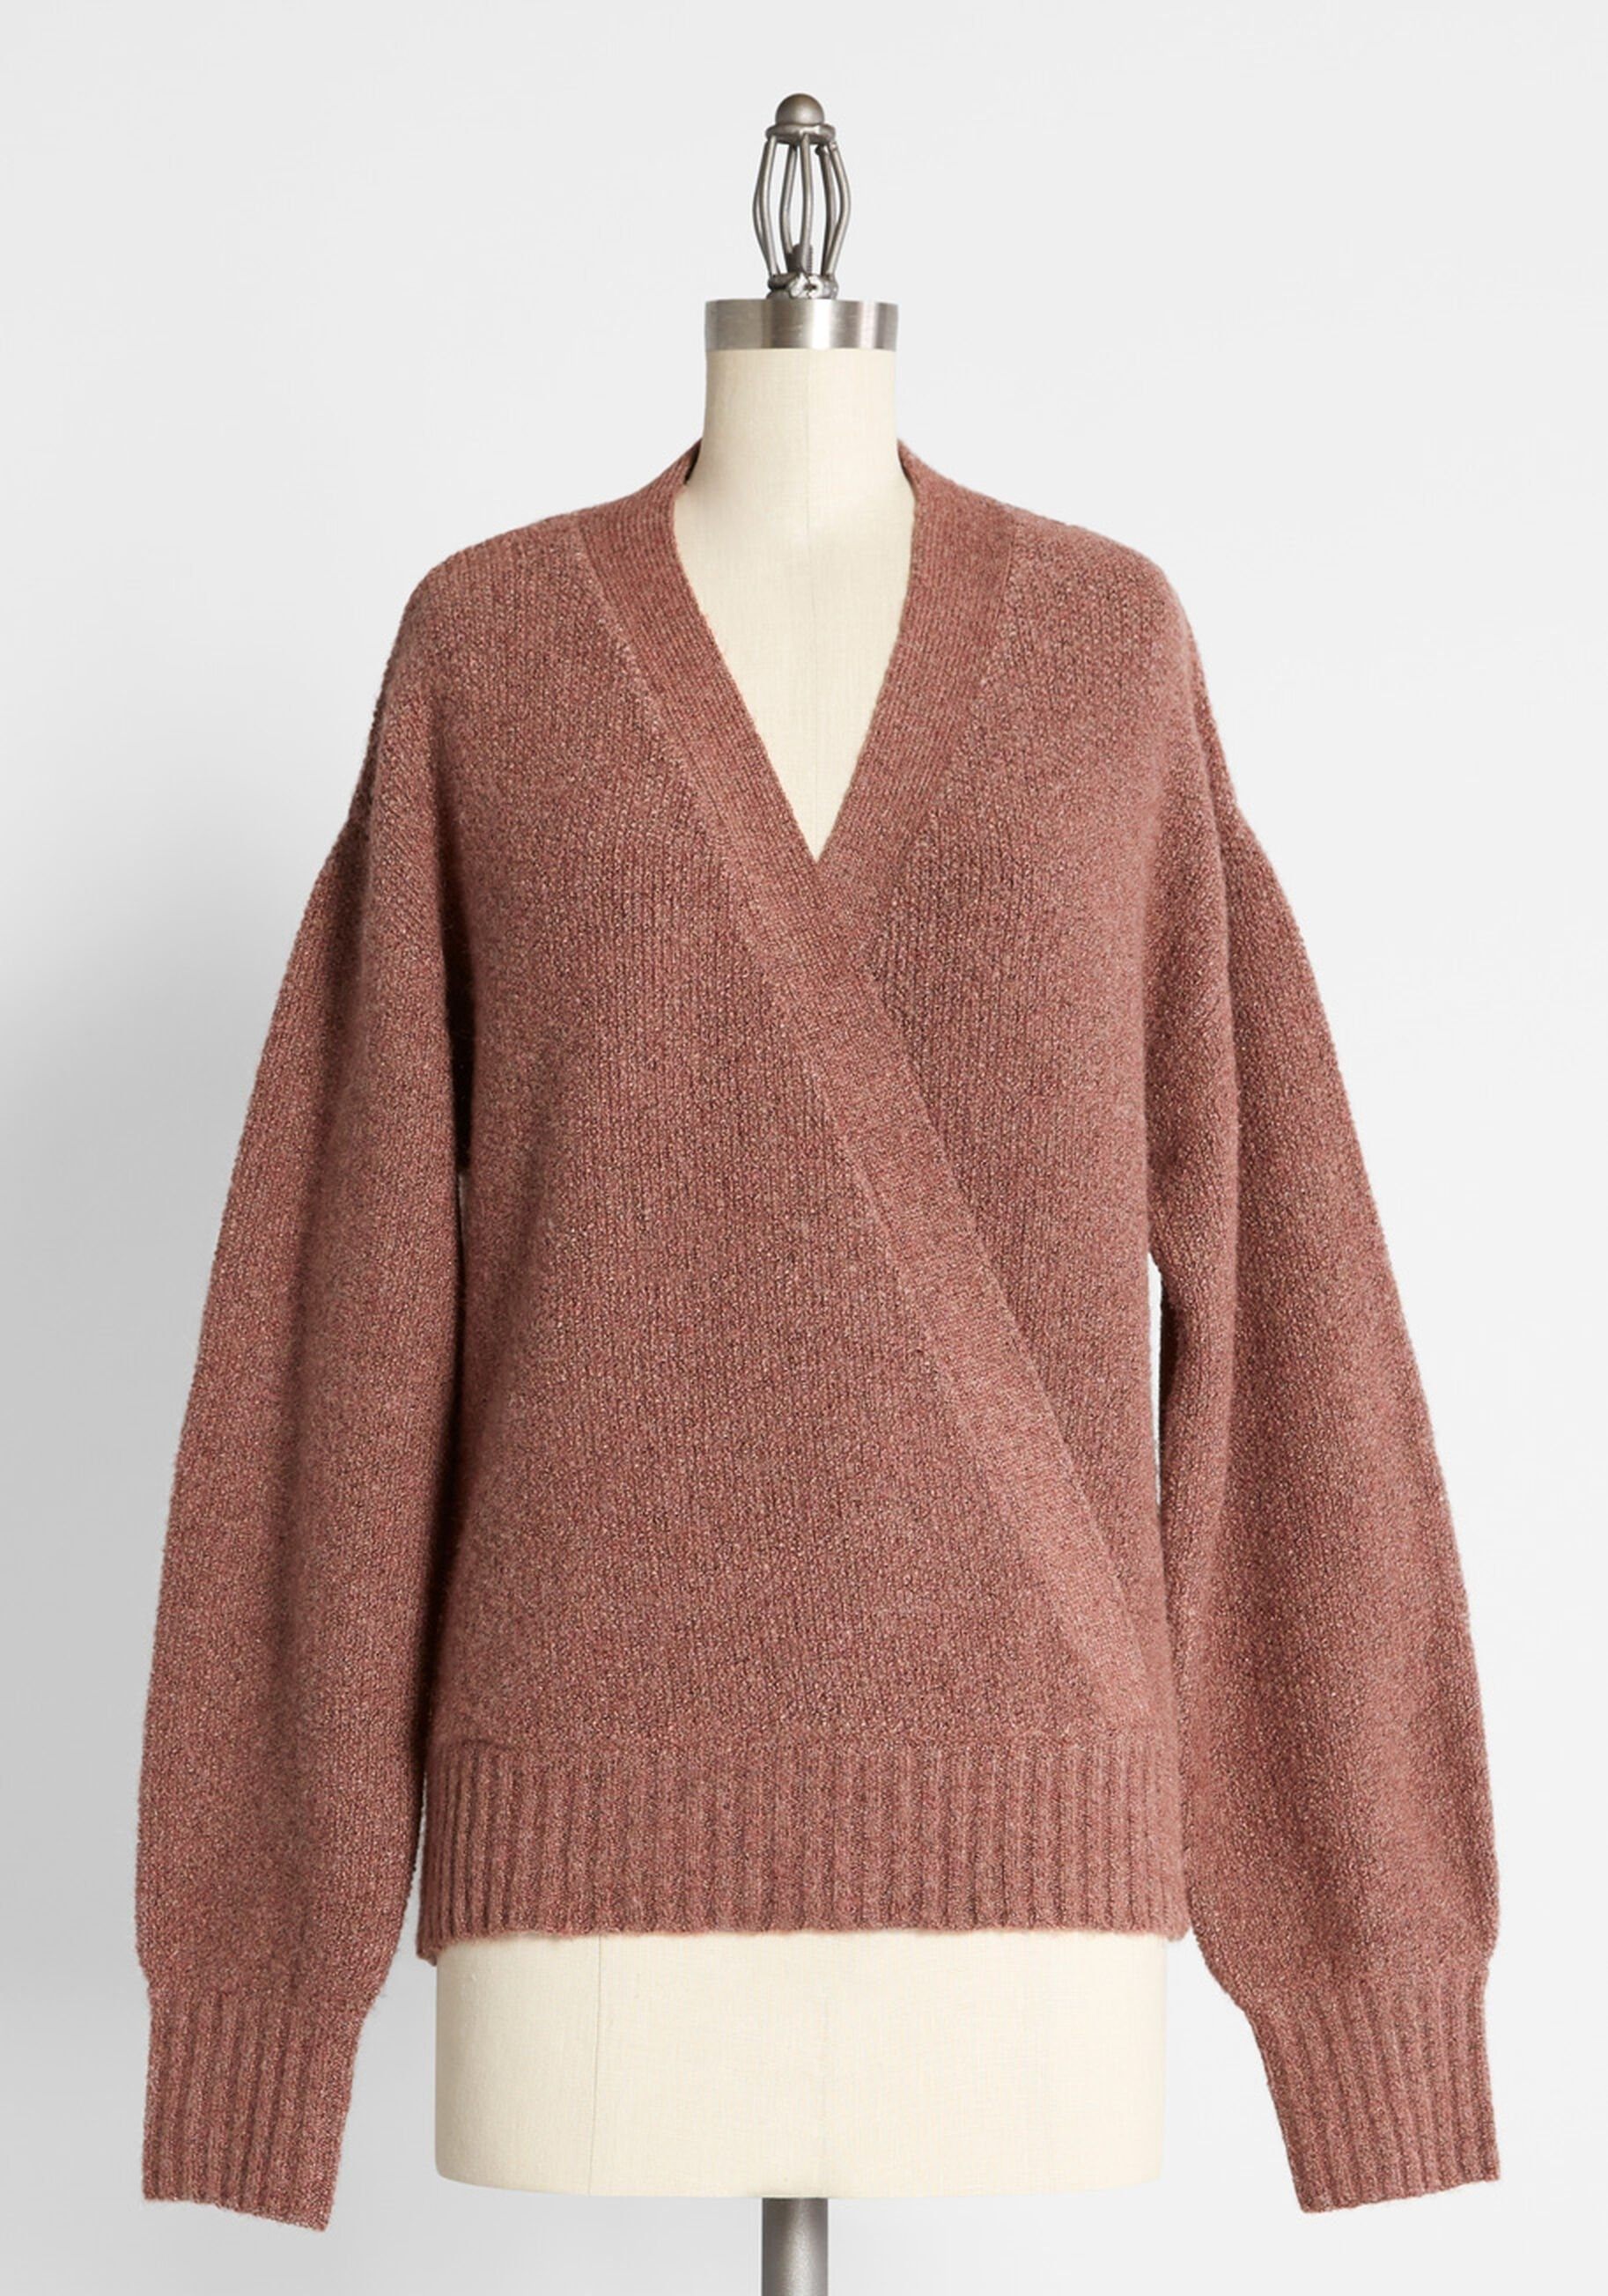 a mauve sweater with a v-neck